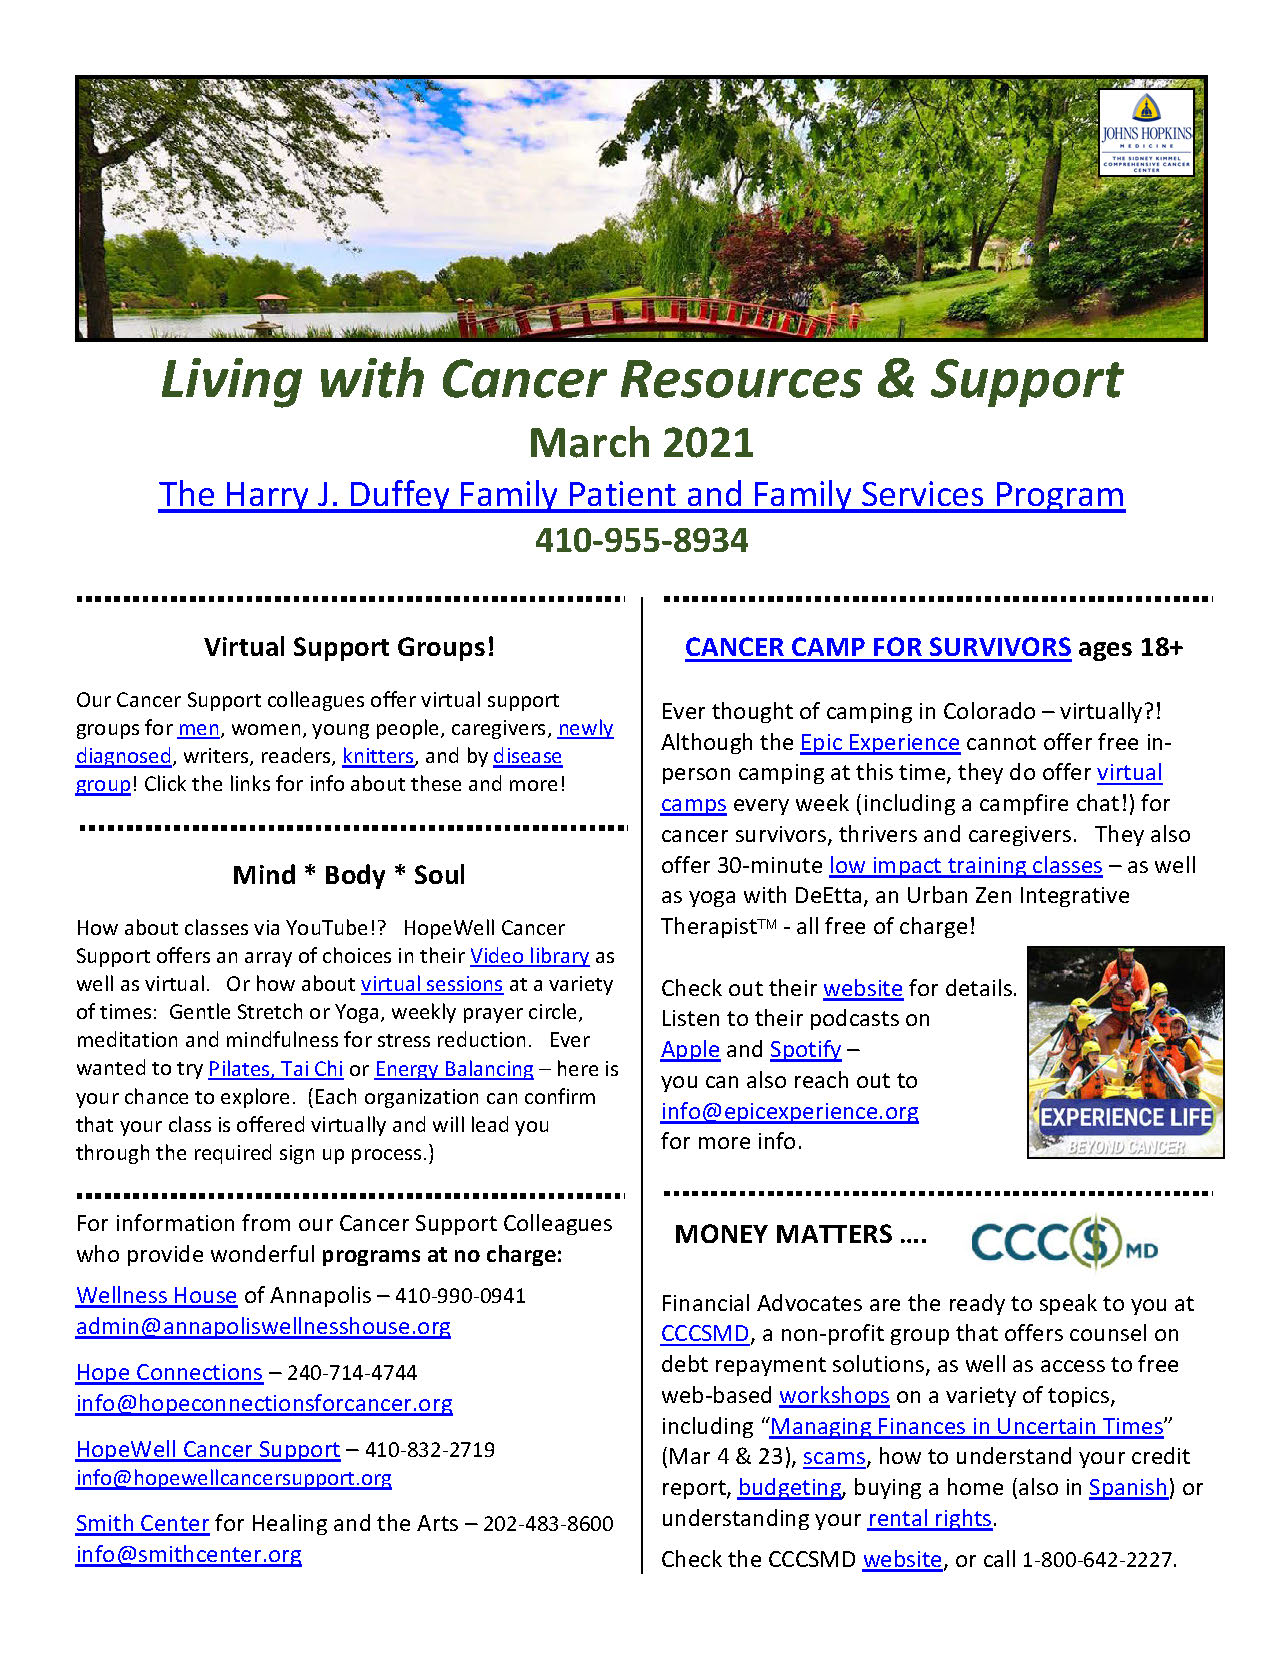 Living with Cancer March 2021 Image_Page_1